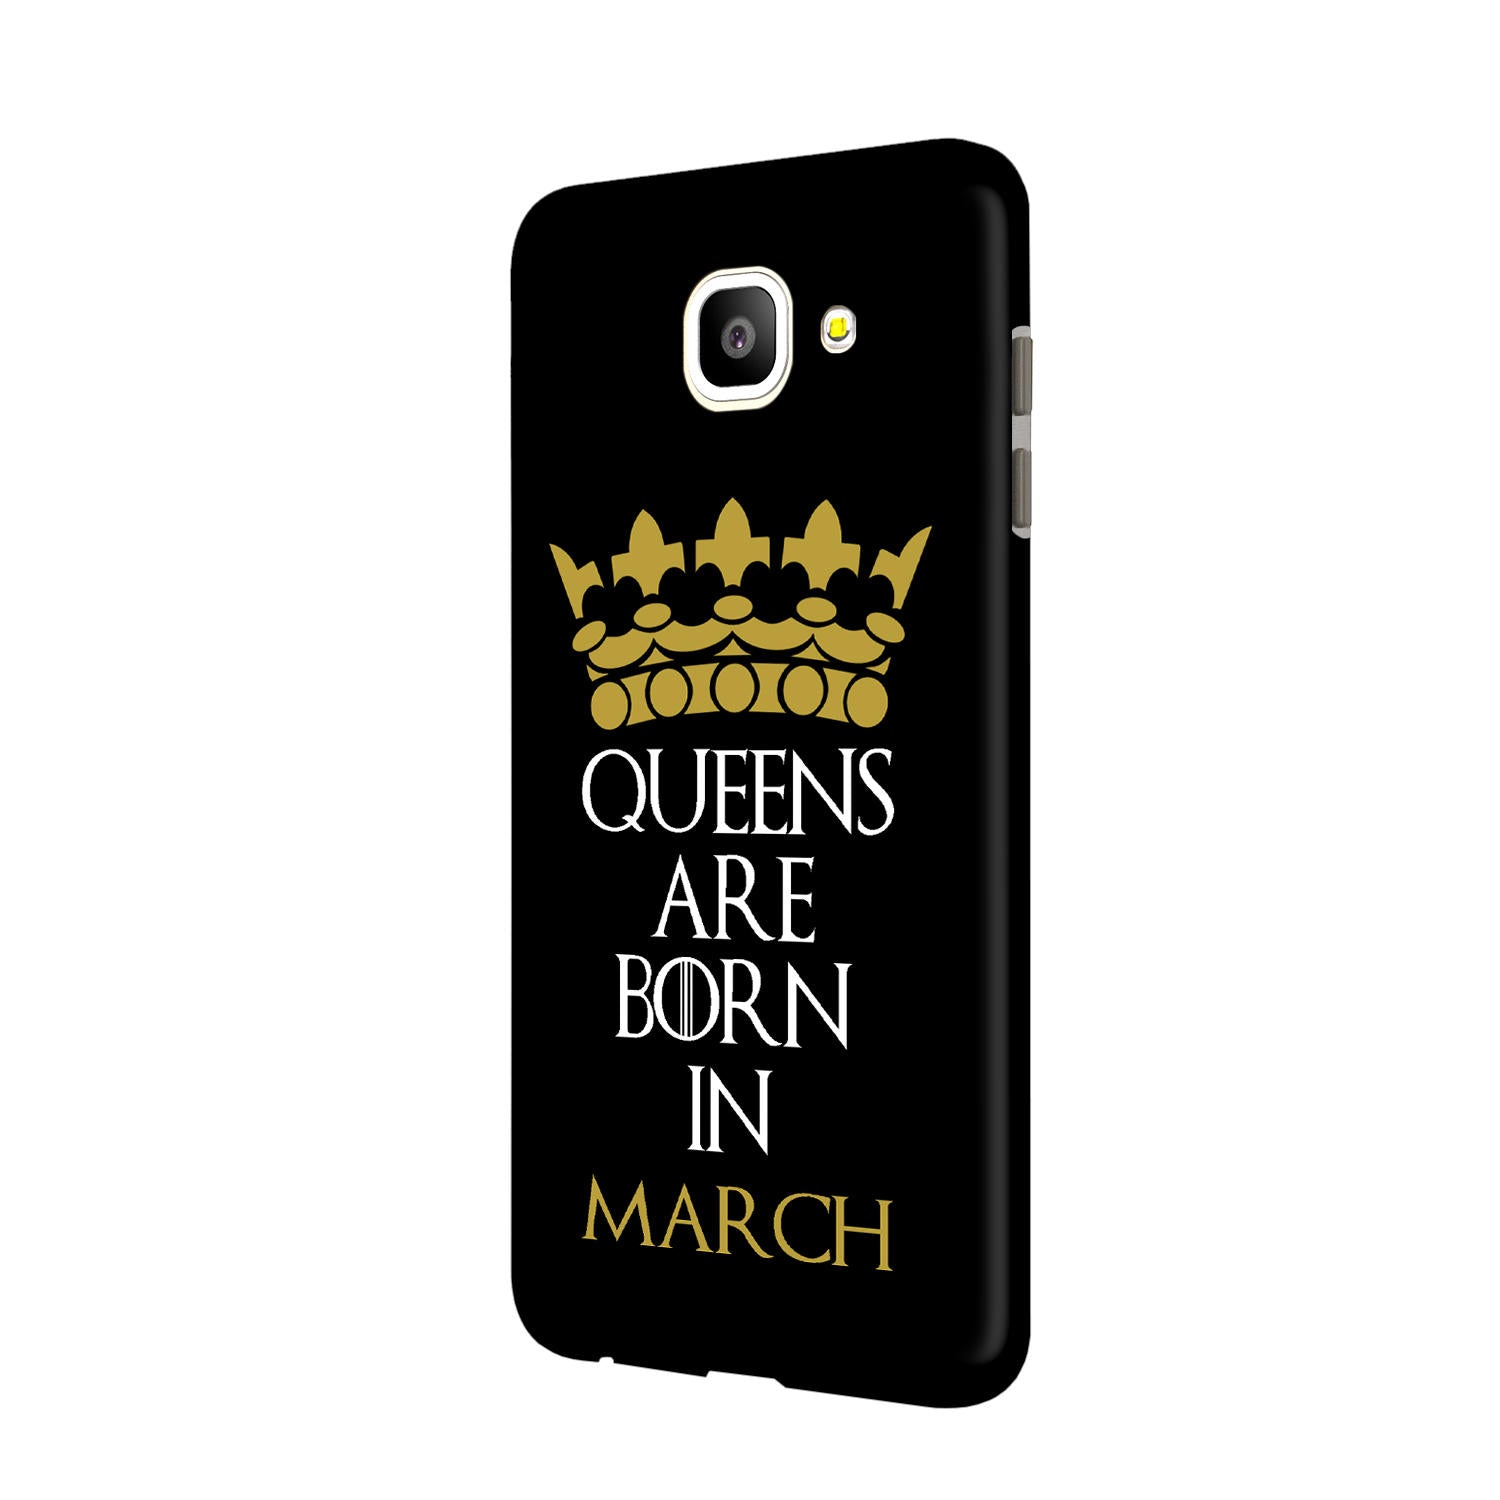 Queens March Samsung Galaxy J7 Max Mobile Cover Case - MADANYU